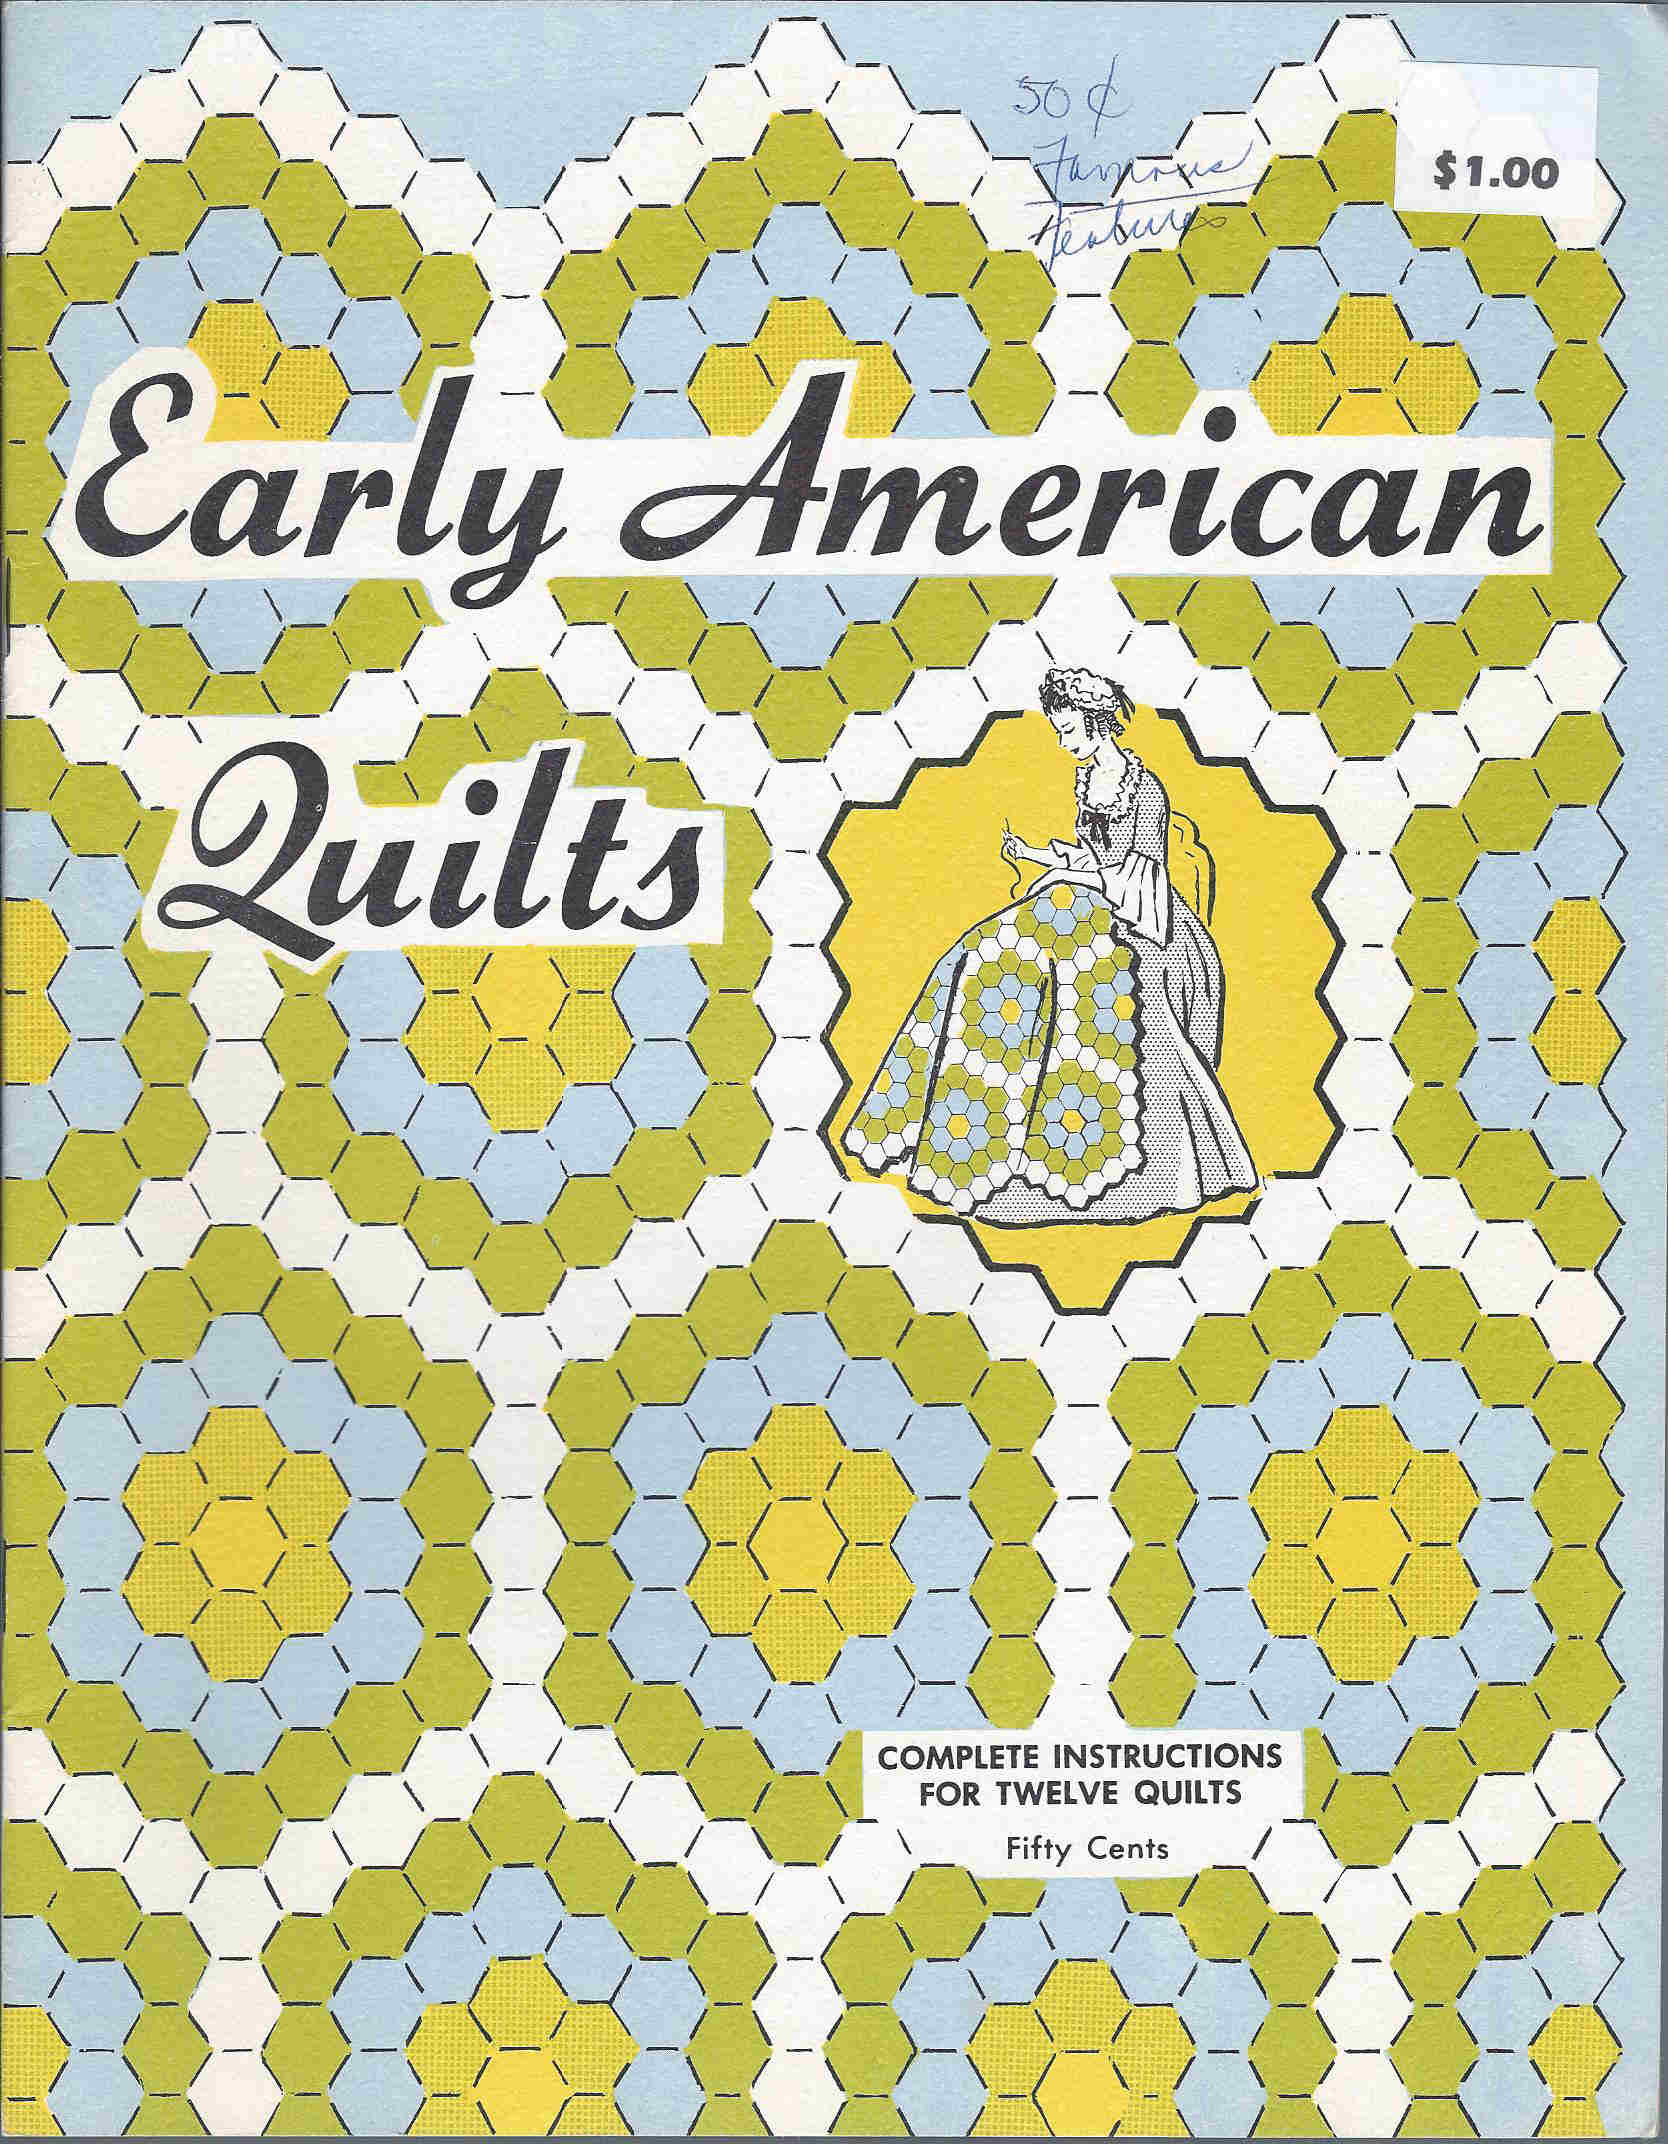 early american quilts